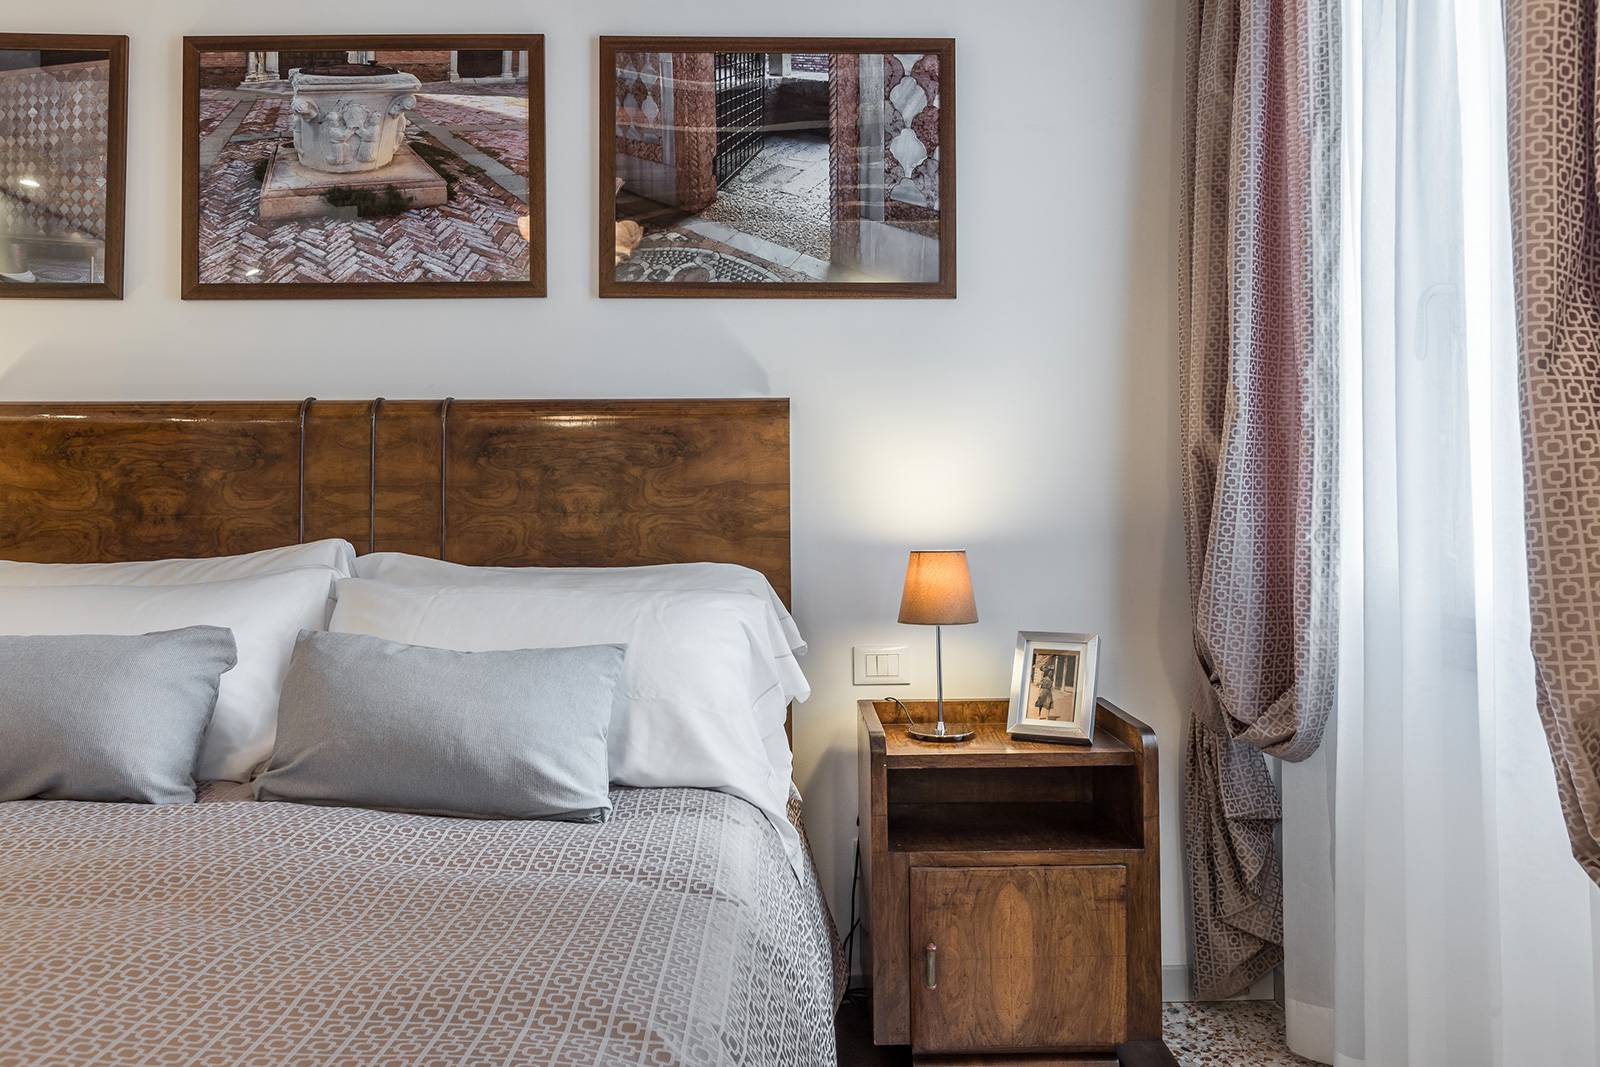 refined textiles and antique furniture confer a welcoming atmosphere